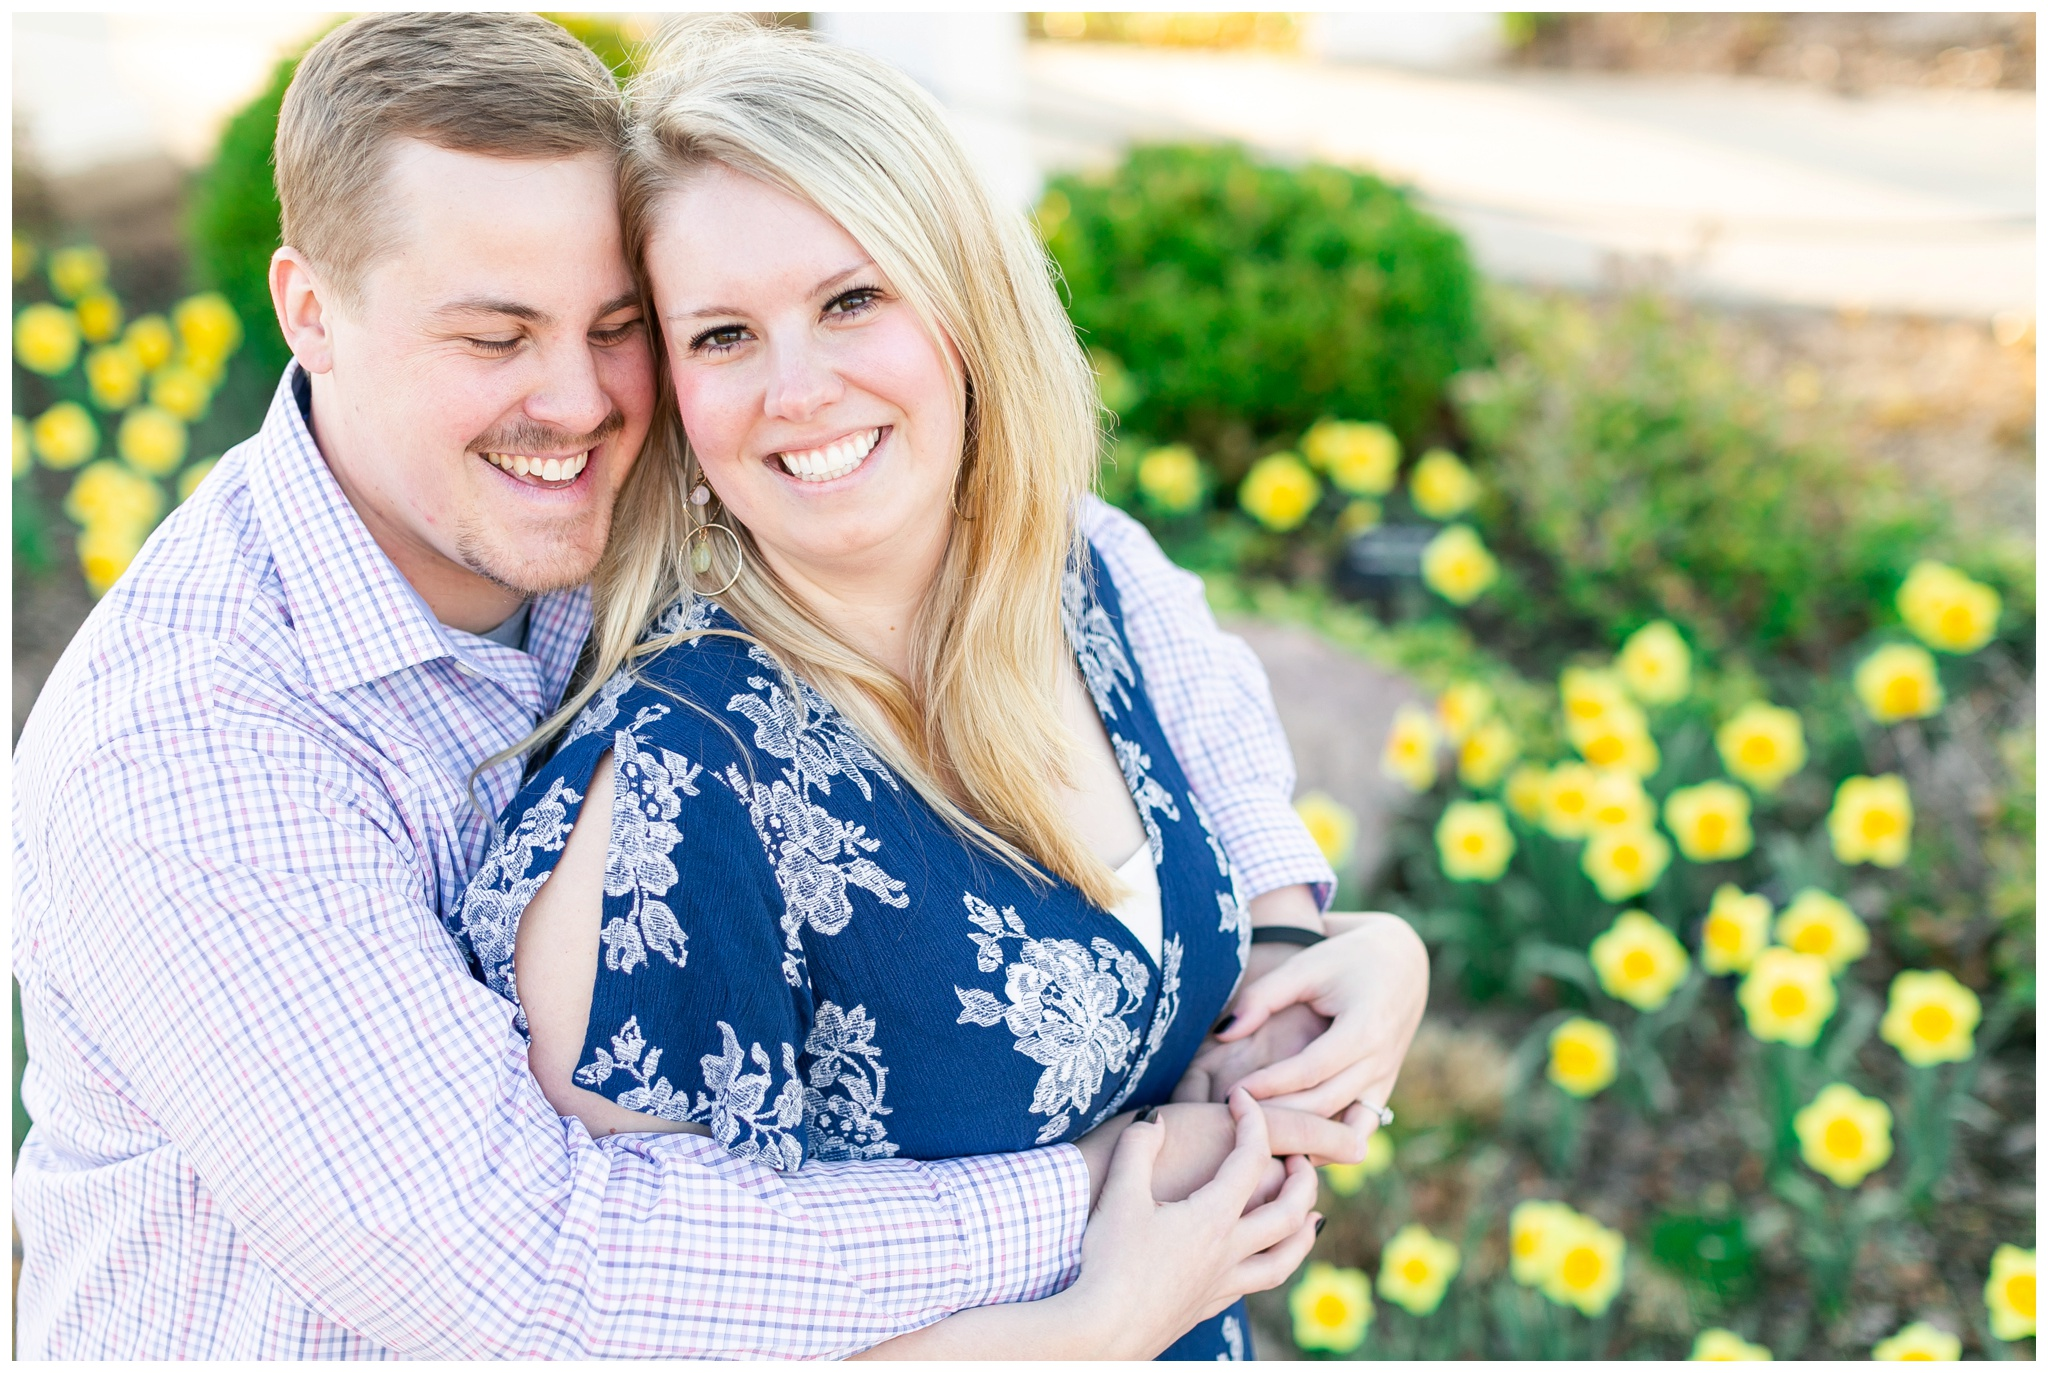 nicholas_conservatory_engagement_session_rockford_illinois_caynay_photo_2982.jpg